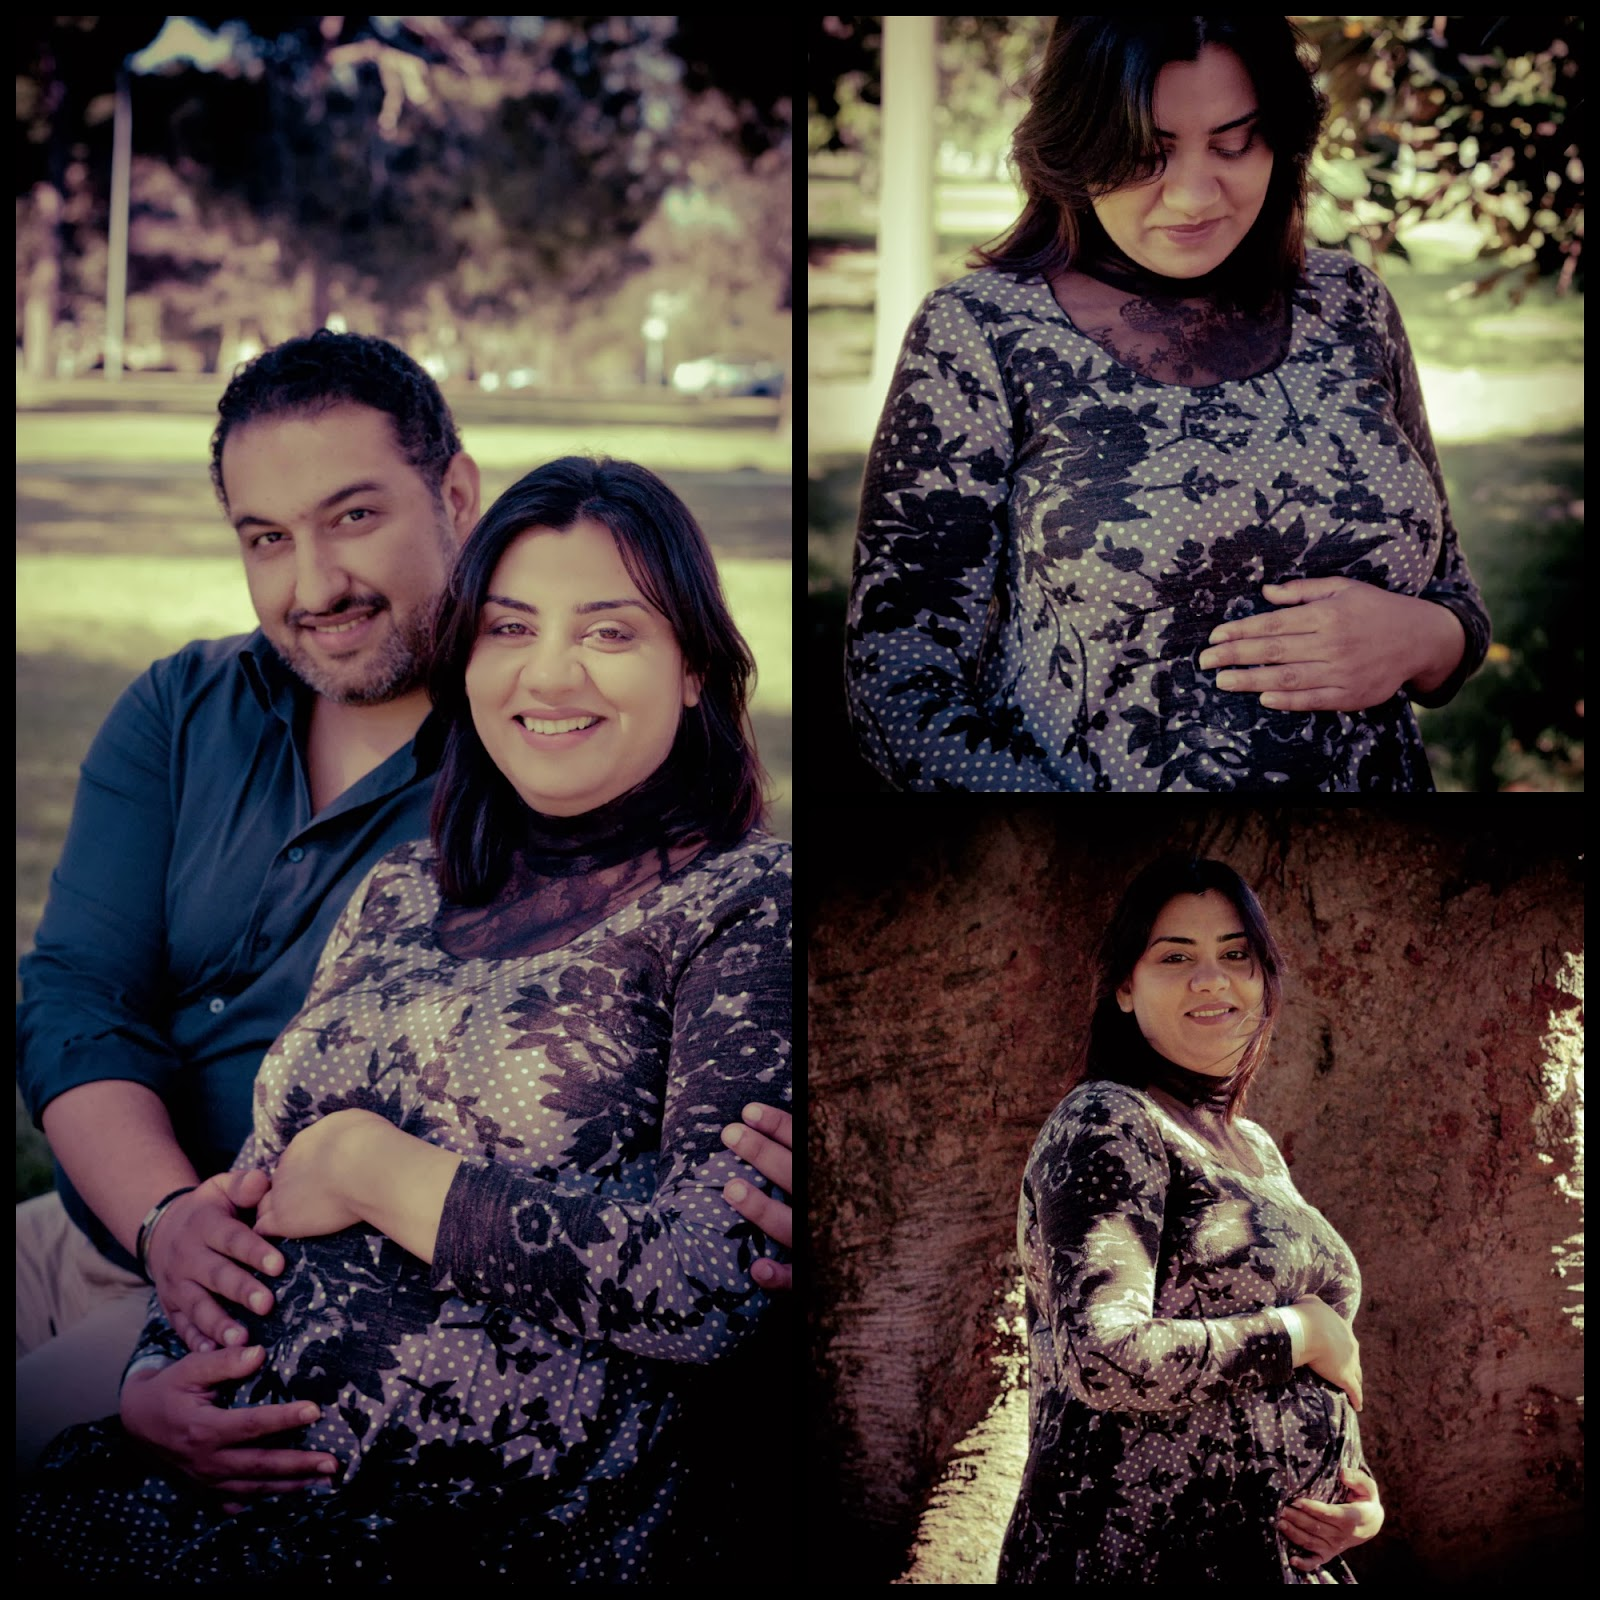 Pregnancy shoot